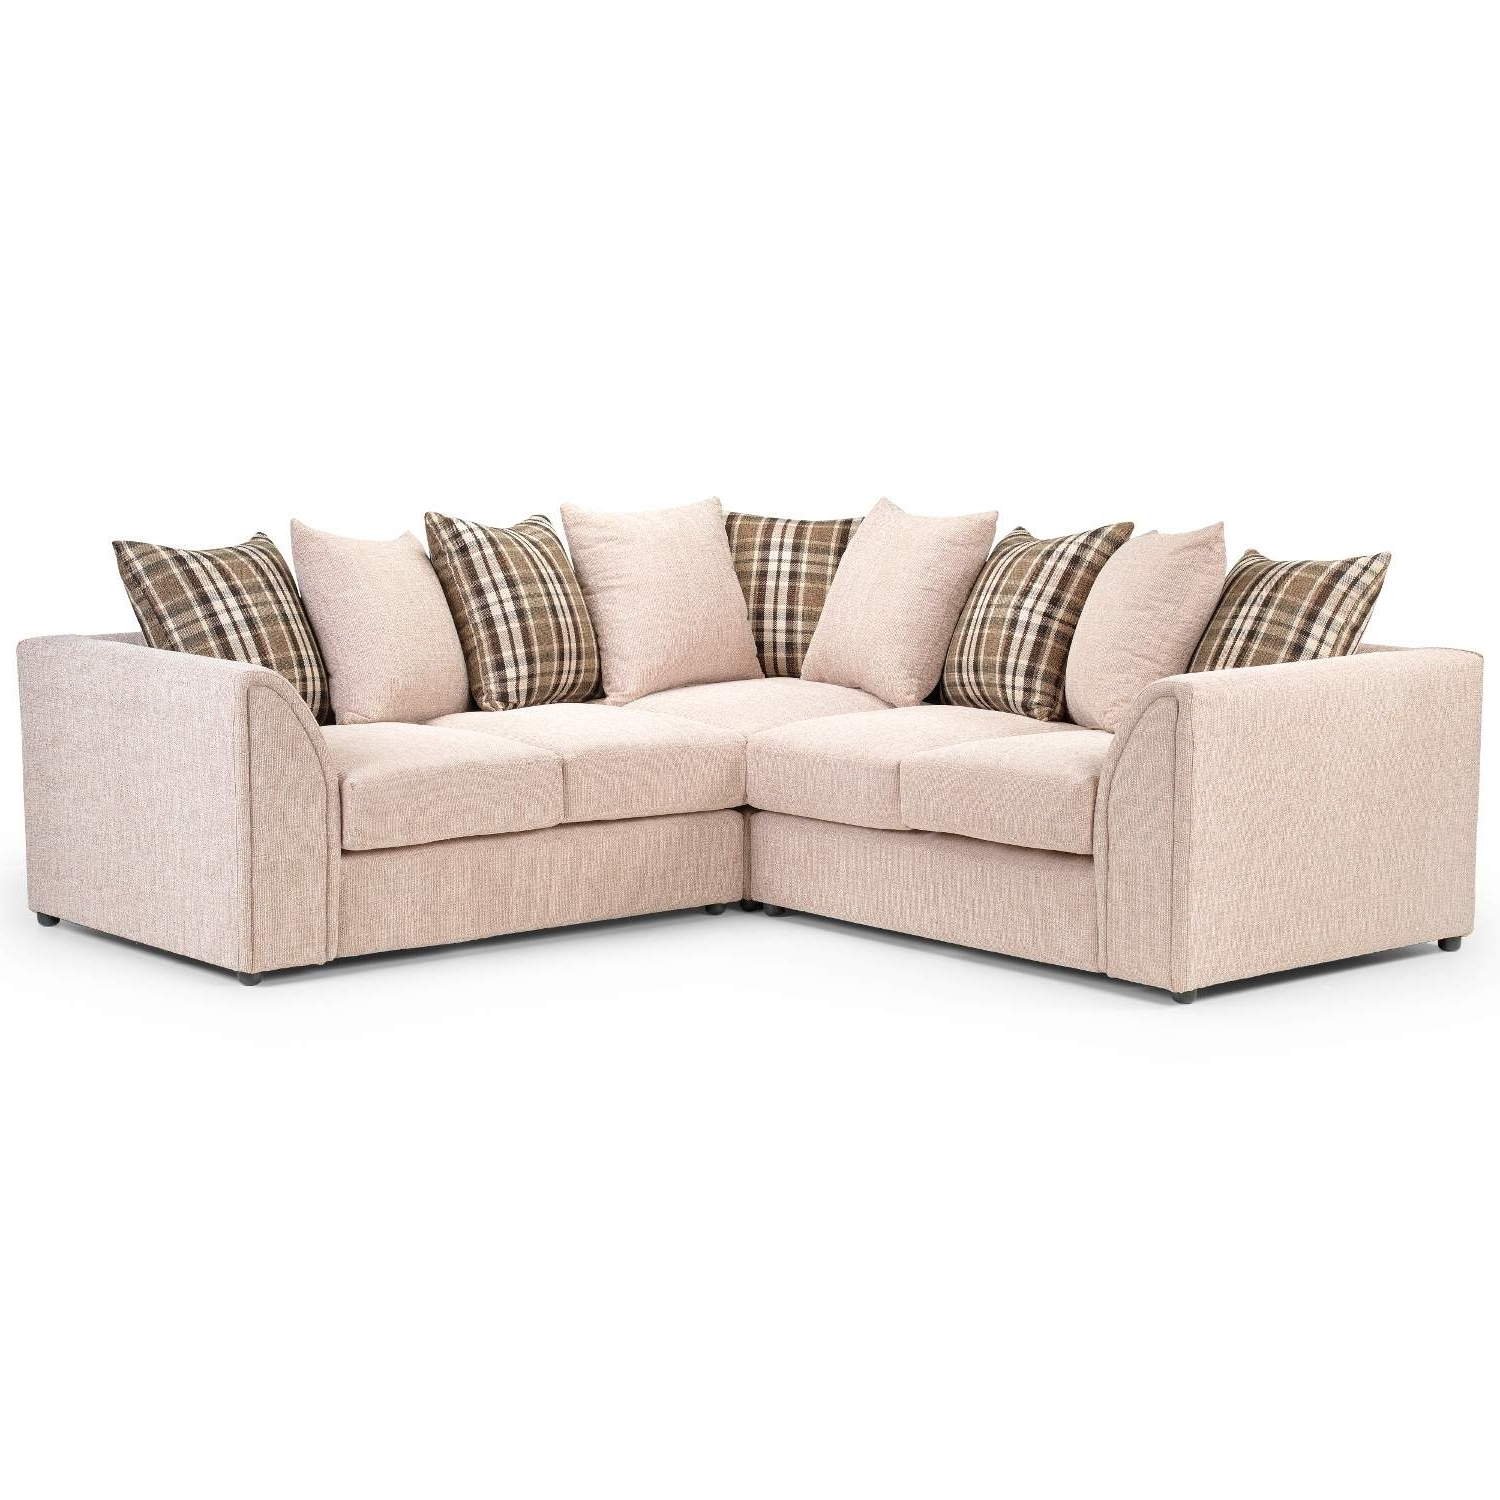 Most Up To Date Fabric Corner Sofas Intended For Nevada Large Fabric Corner Sofa – Next Day Delivery Nevada Large (View 14 of 20)